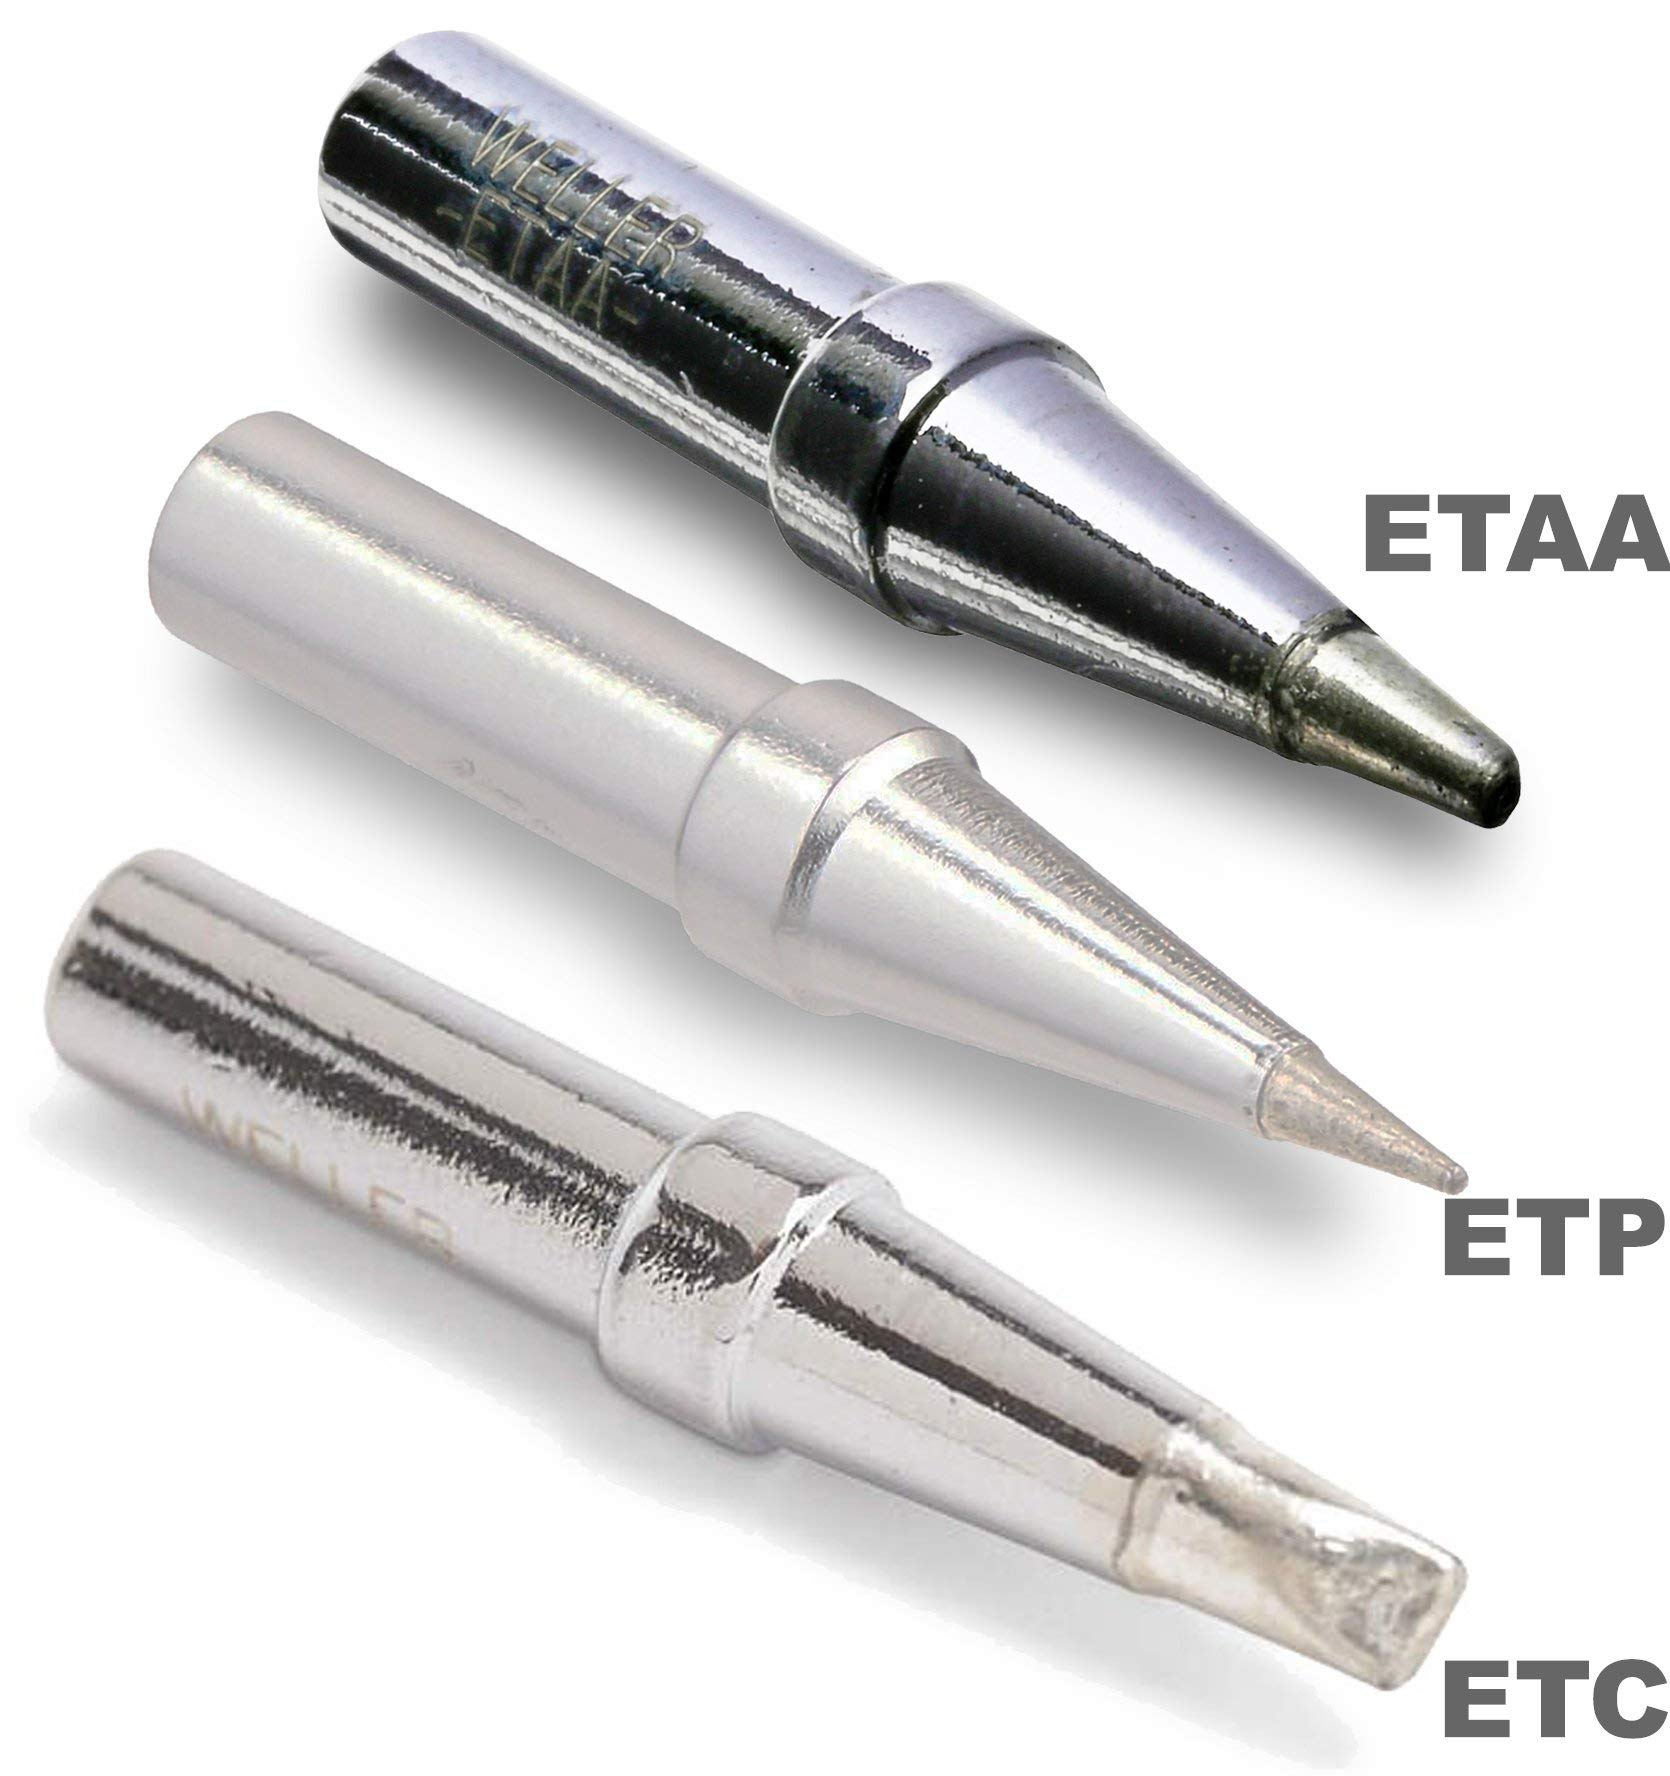 Weller (1 ETP & 1 ETAA & 1 ETC ) Tip for EC1201, PES50, PES51, Conical Tip Width: 0.031'', Length 0.625'' and Flat Tip, 0.062'' Height 0.040'', and Screwdriver Length 0.062'' Height 0.027'', Width 0.125''